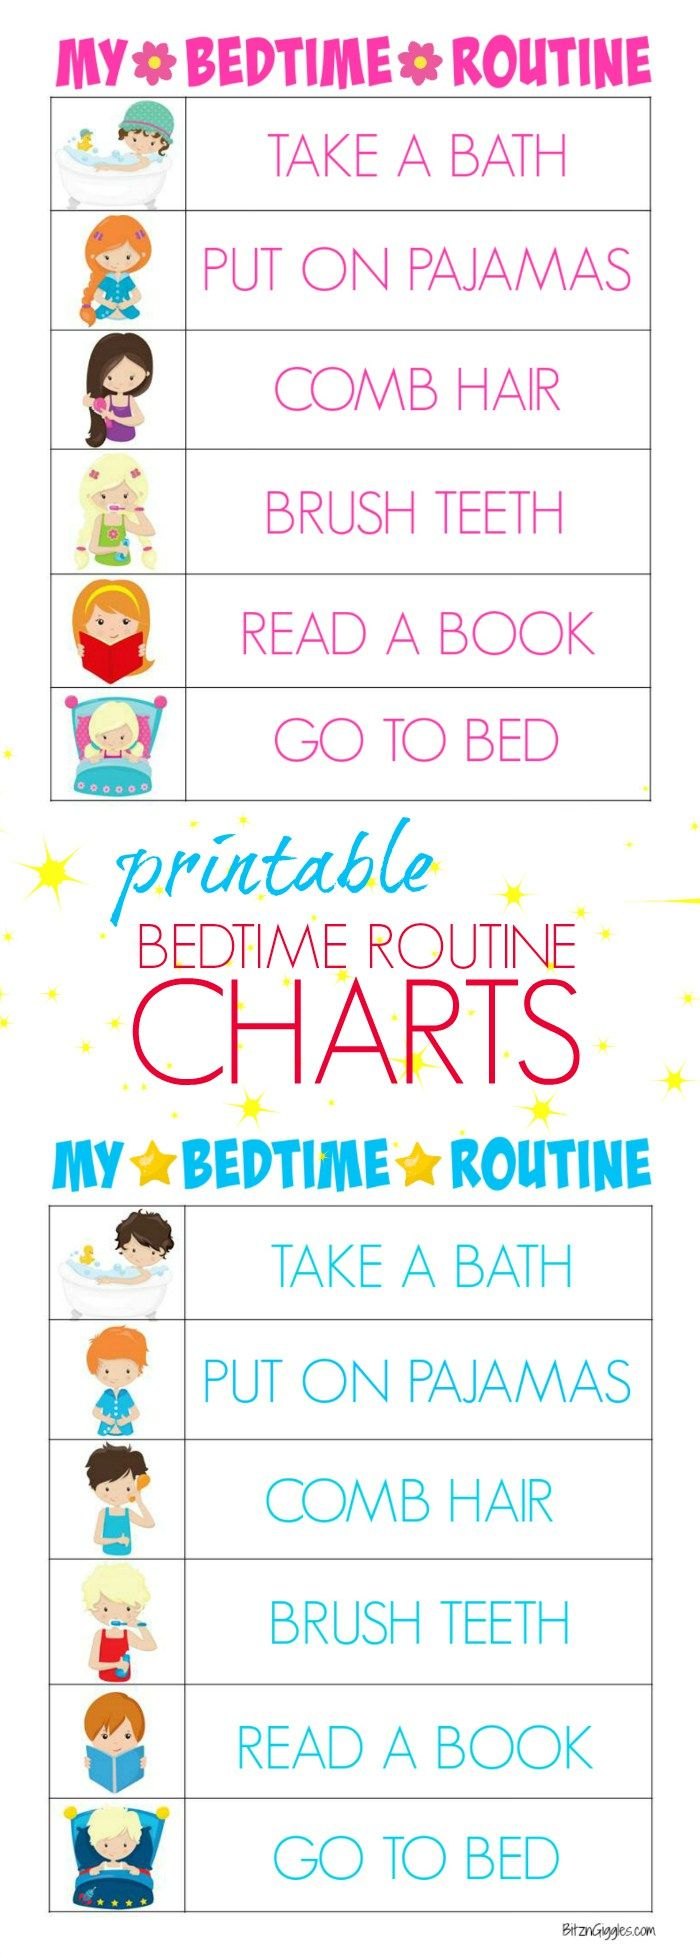 Printable Bedtime Routine Charts - Bitz & Giggles